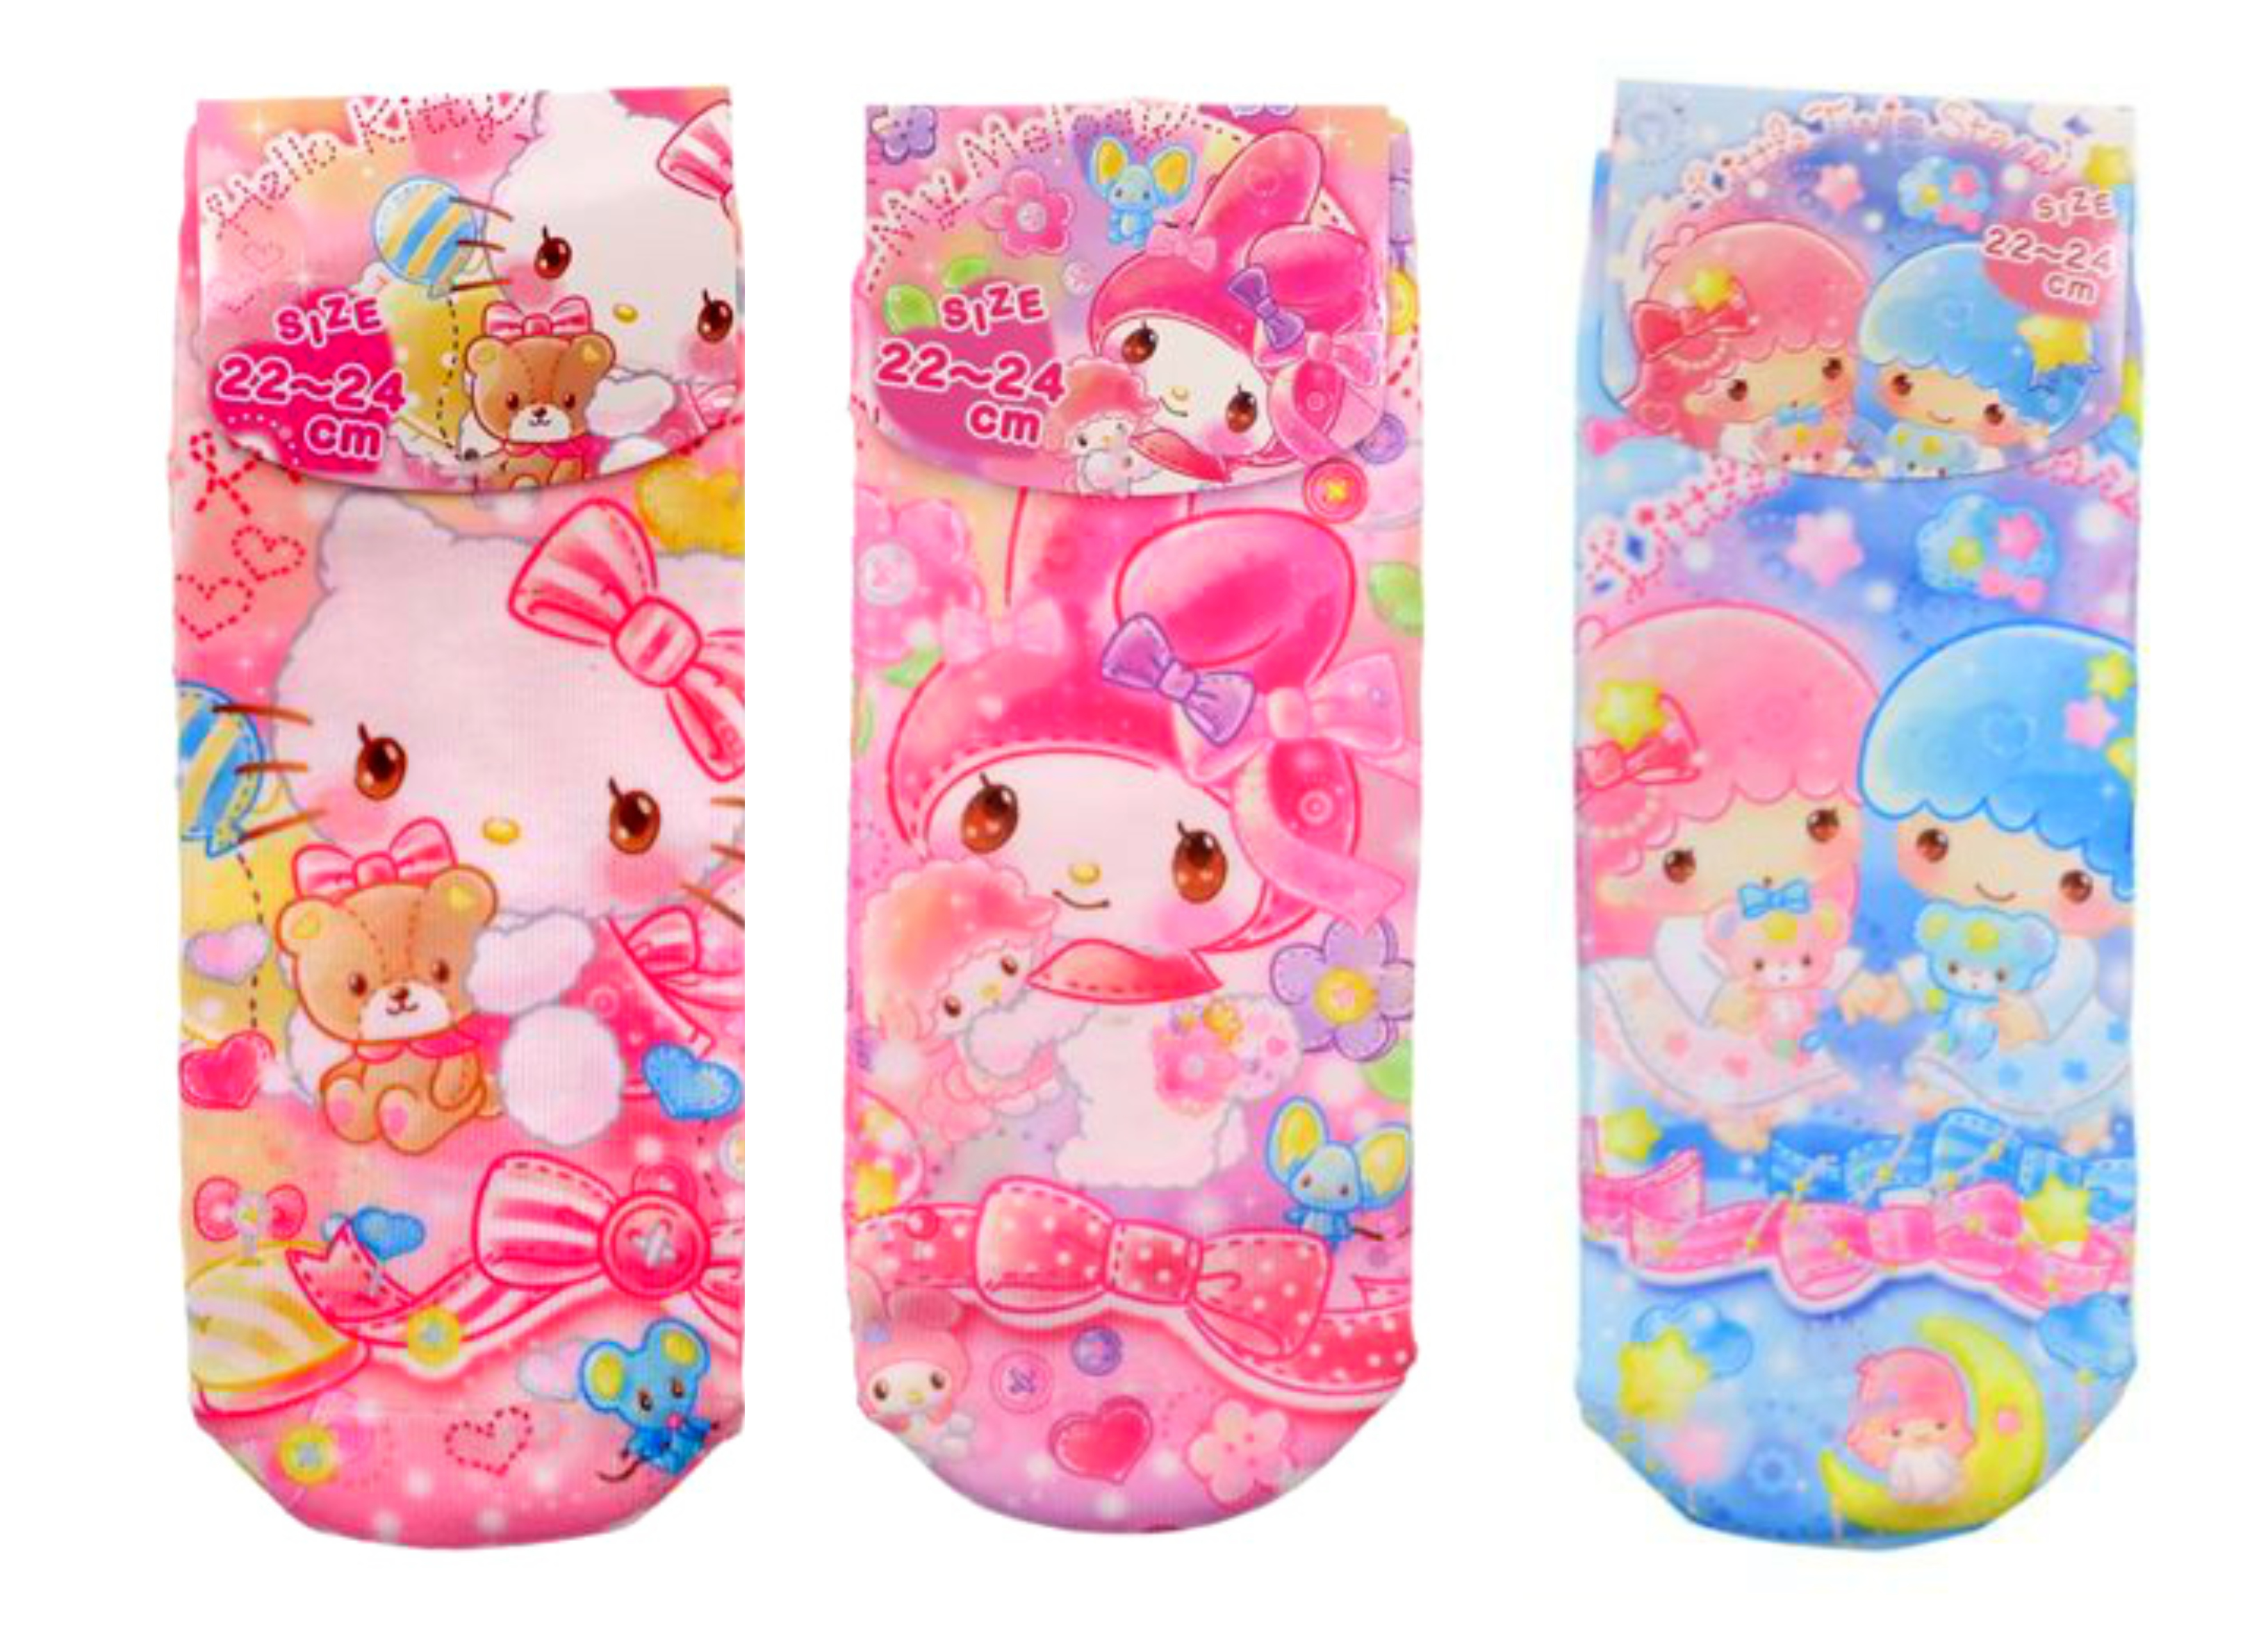 fabe1129d Sanrio Character Socks Pink Elegant Womens (Hello Kitty, My Melody, Little  Twin Stars)- Clothing and Accessories on Storenvy